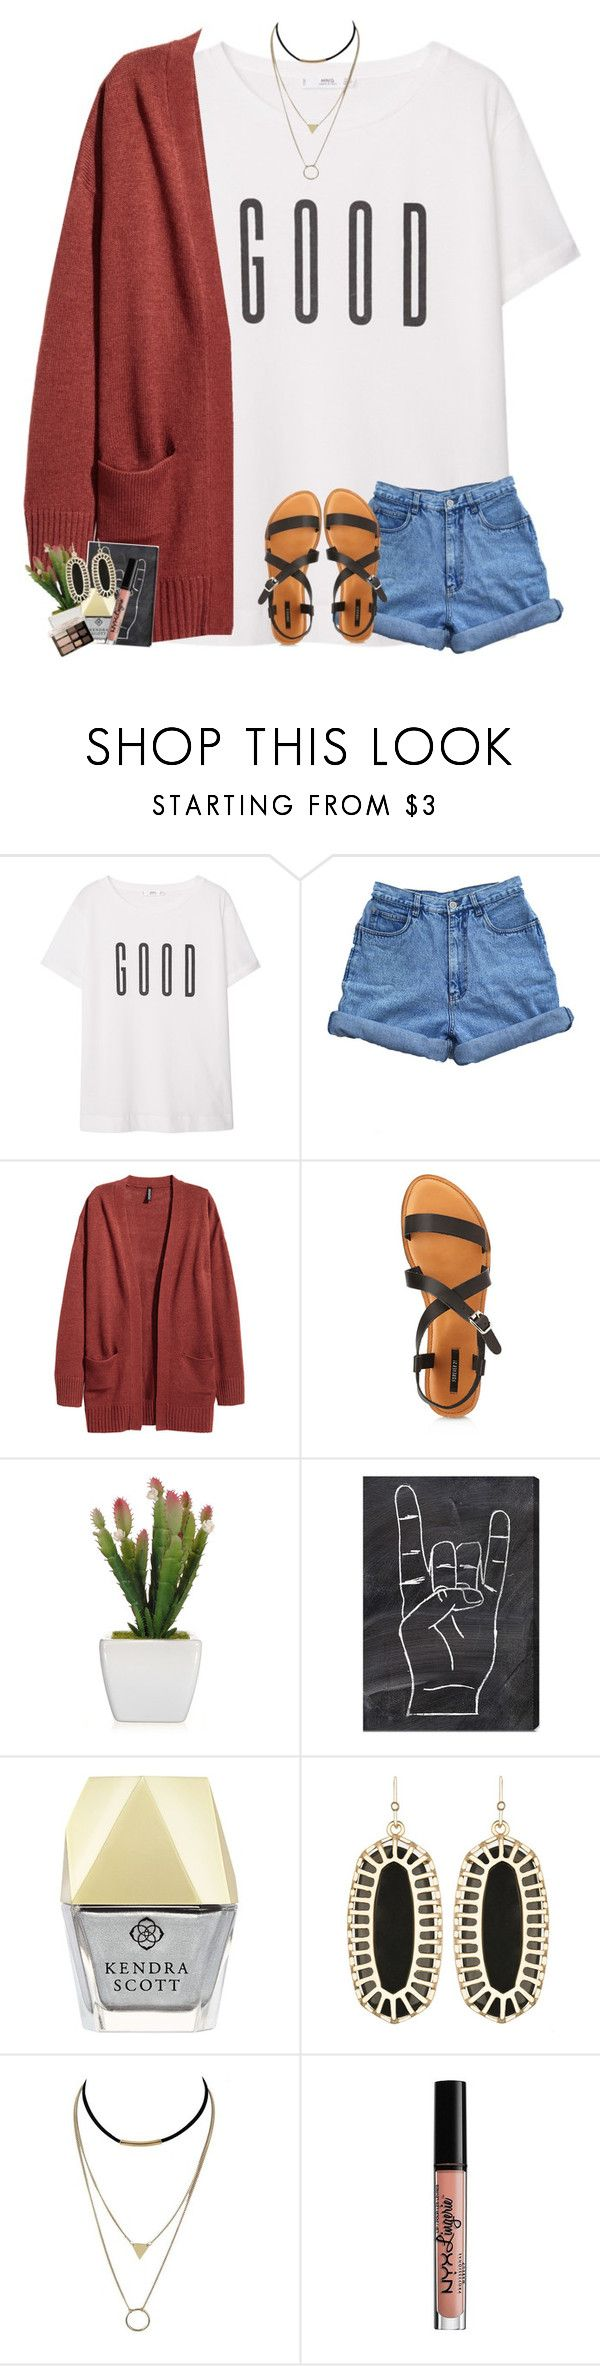 """""""goodnight gals!!!"""" by sophie-dye ❤ liked on Polyvore featuring MANGO, Bill Blass, Forever 21, Oliver Gal Artist Co., Kendra Scott, NYX and Too Faced Cosmetics"""